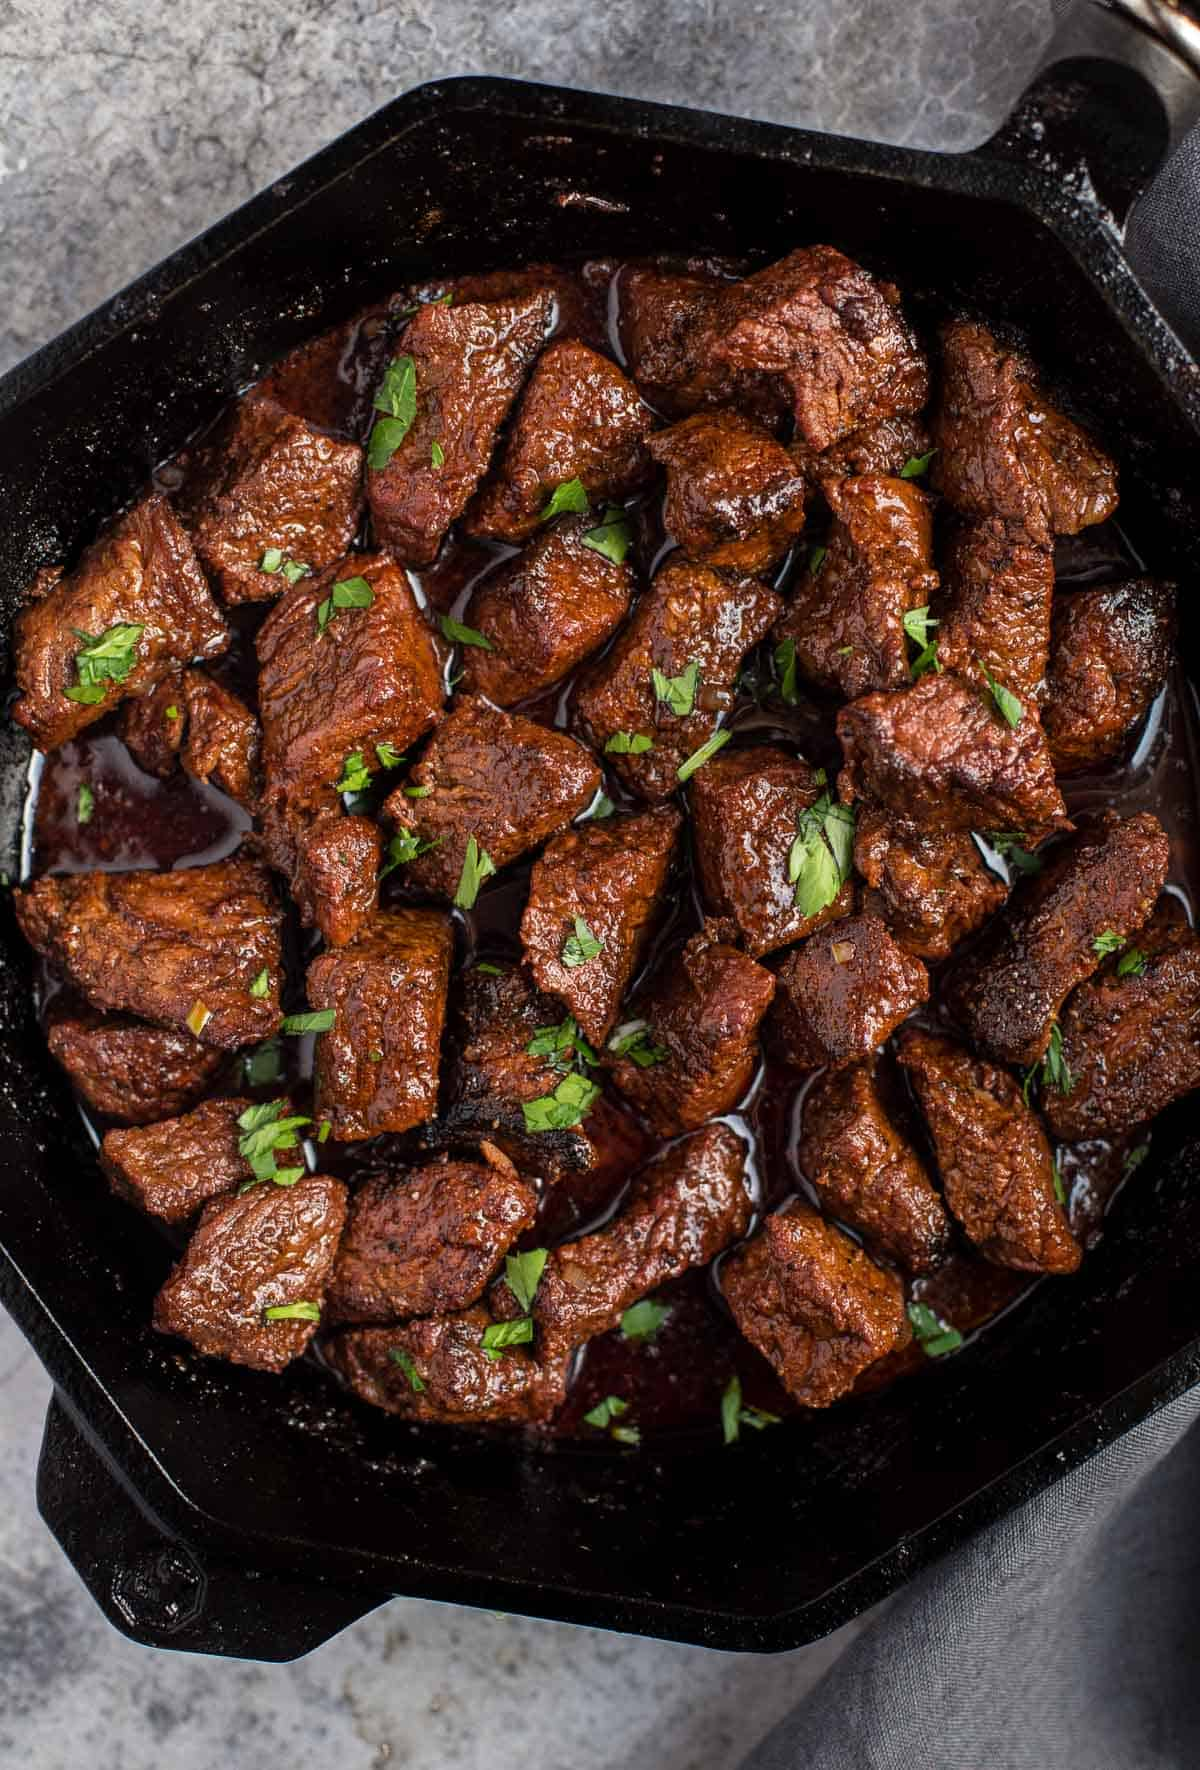 Grilled Steak Bites in a cast iron pan